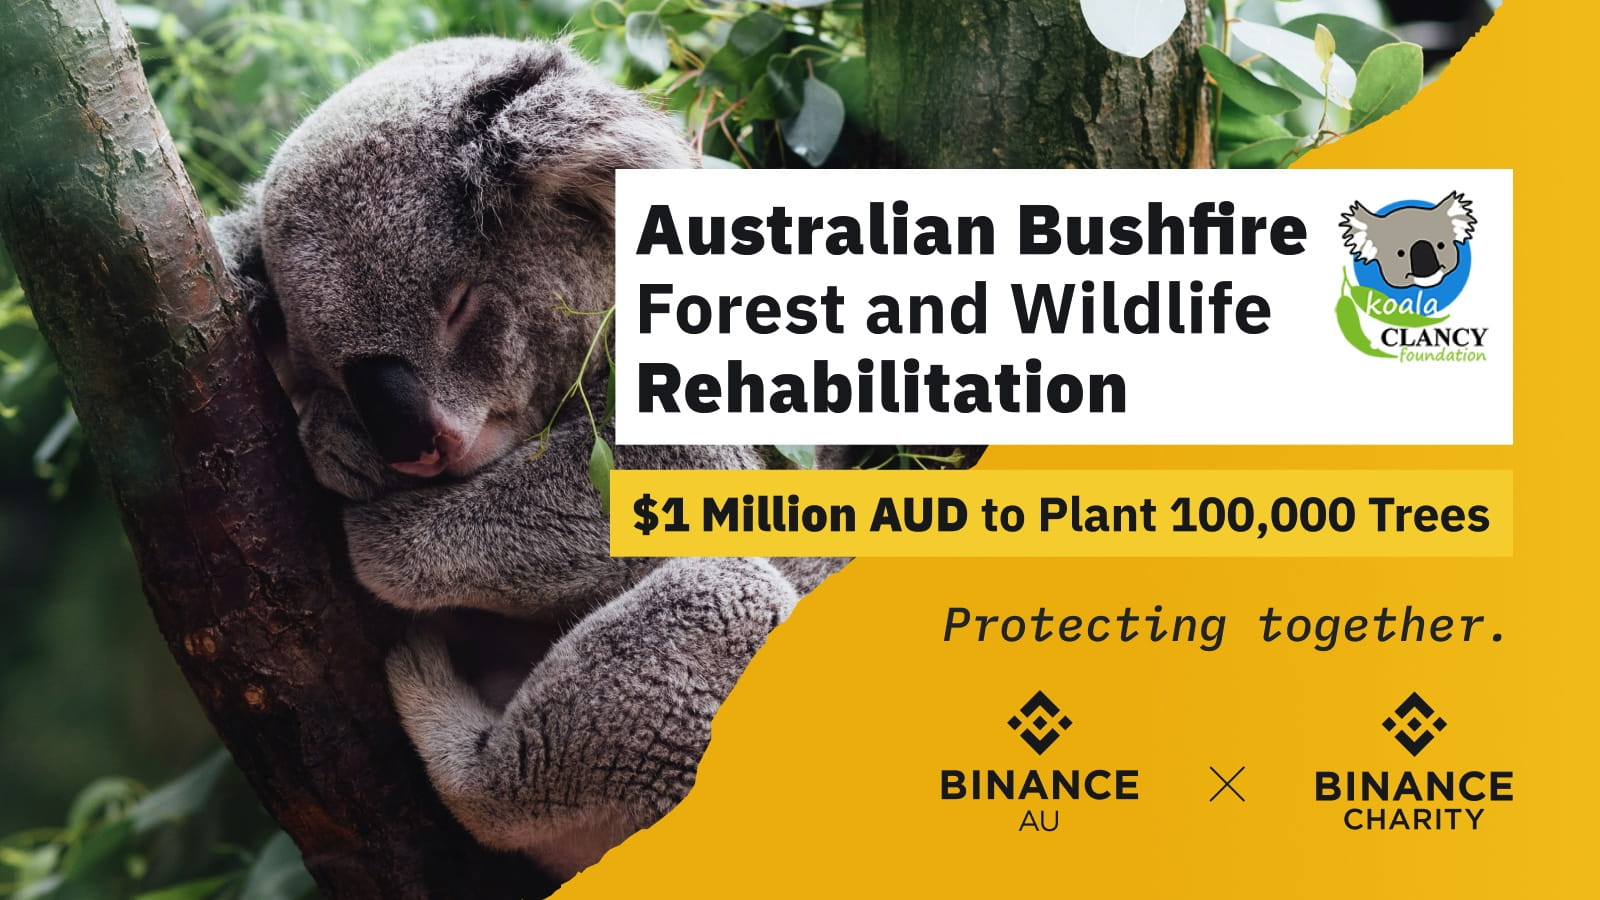 Binance Charity Pledges To Raise $1M AUD To Plant 100,000 Trees In AustraliaCryptocurrency Trading Signals, Strategies & Templates | DexStrats